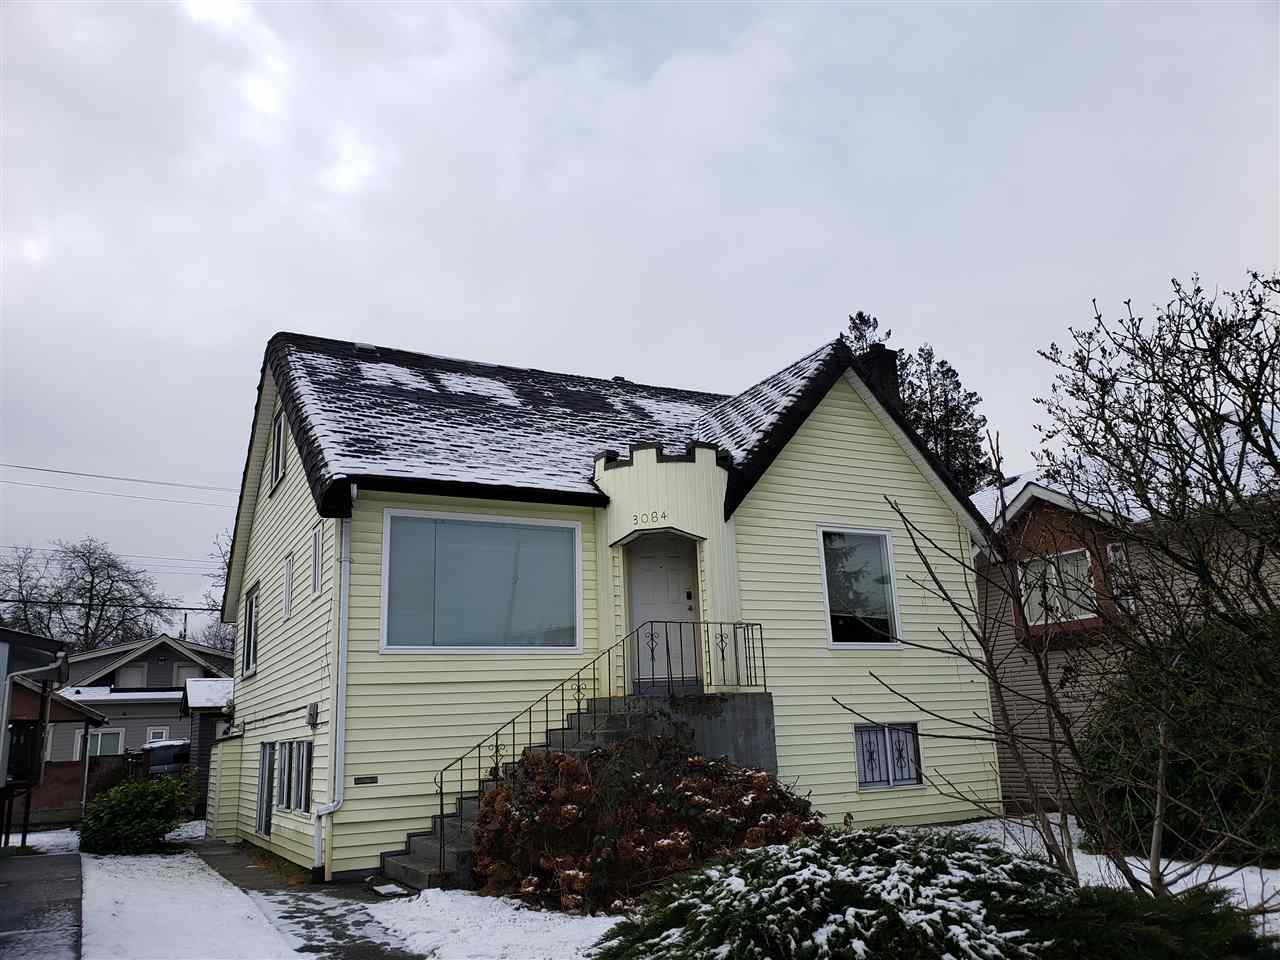 INVESTOR ALERT!! Character 'Mediterranean Style' home in the heart of Renfrew Heights area. Owner occupies and serves licensed Bed and Breakfast with great revenue. Spacious living with 2 bedrooms on main. 2 generous sized bedrooms plus den (could be a 3rd bedroom) on upper floor. Basement suite has separate entrance. Only minutes walk to Superstore, Canadian Tire, Walmart, SkyTrain & all amenities. To move in or to hold for future development. Please do not walk on the property or disturb the occupants.